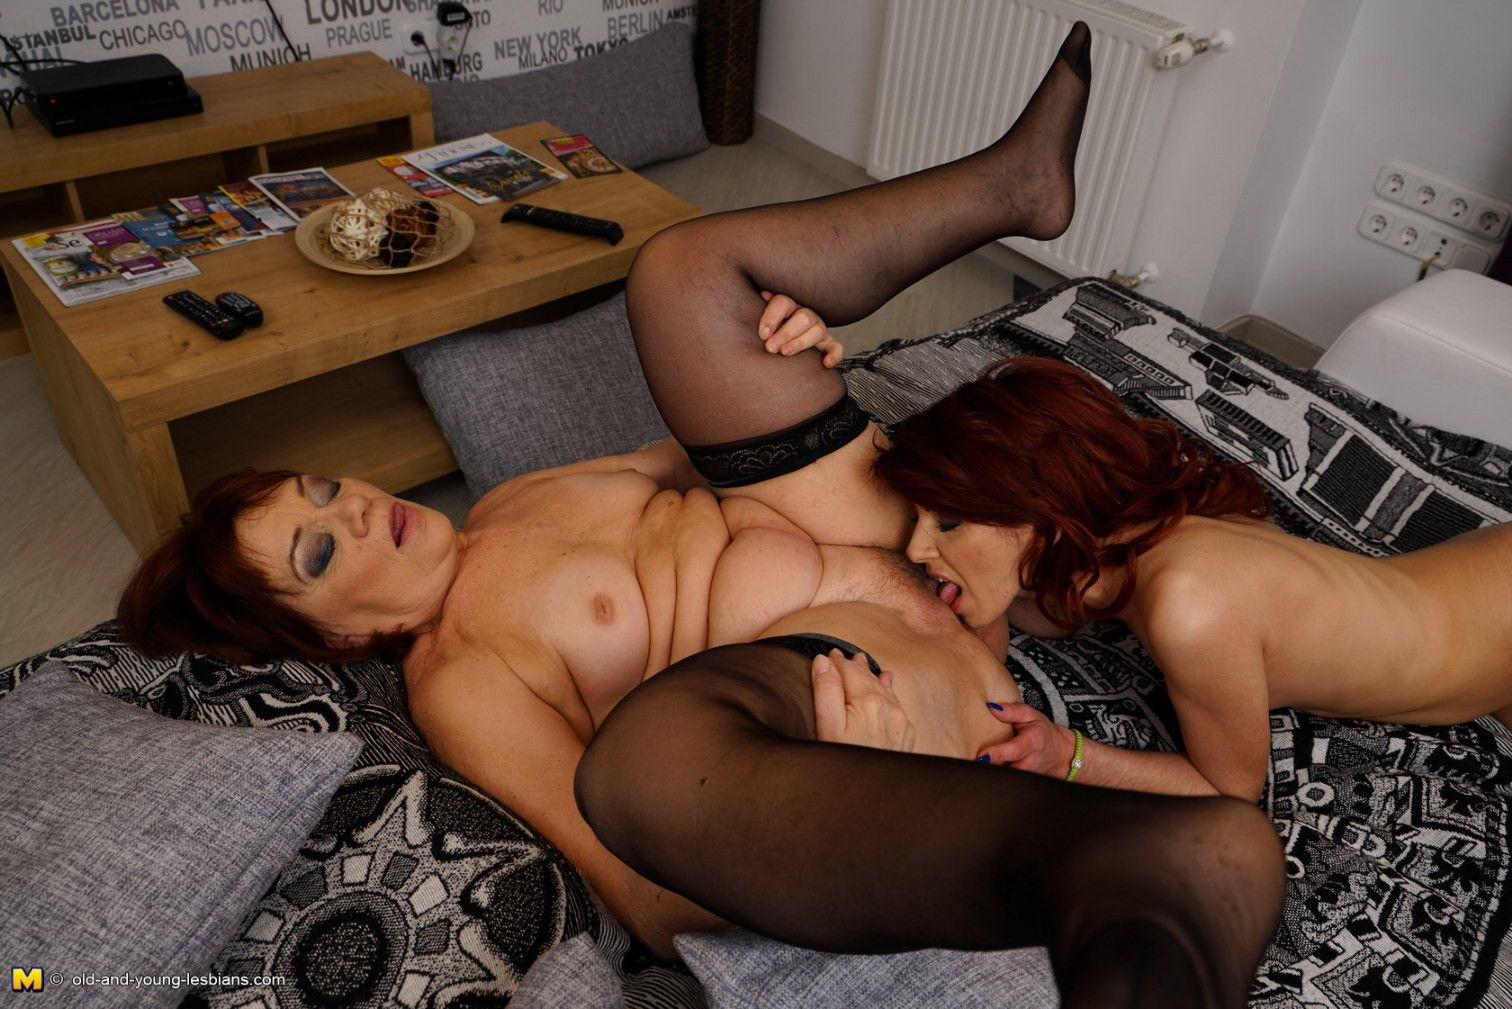 Horny old and young lesbians making out